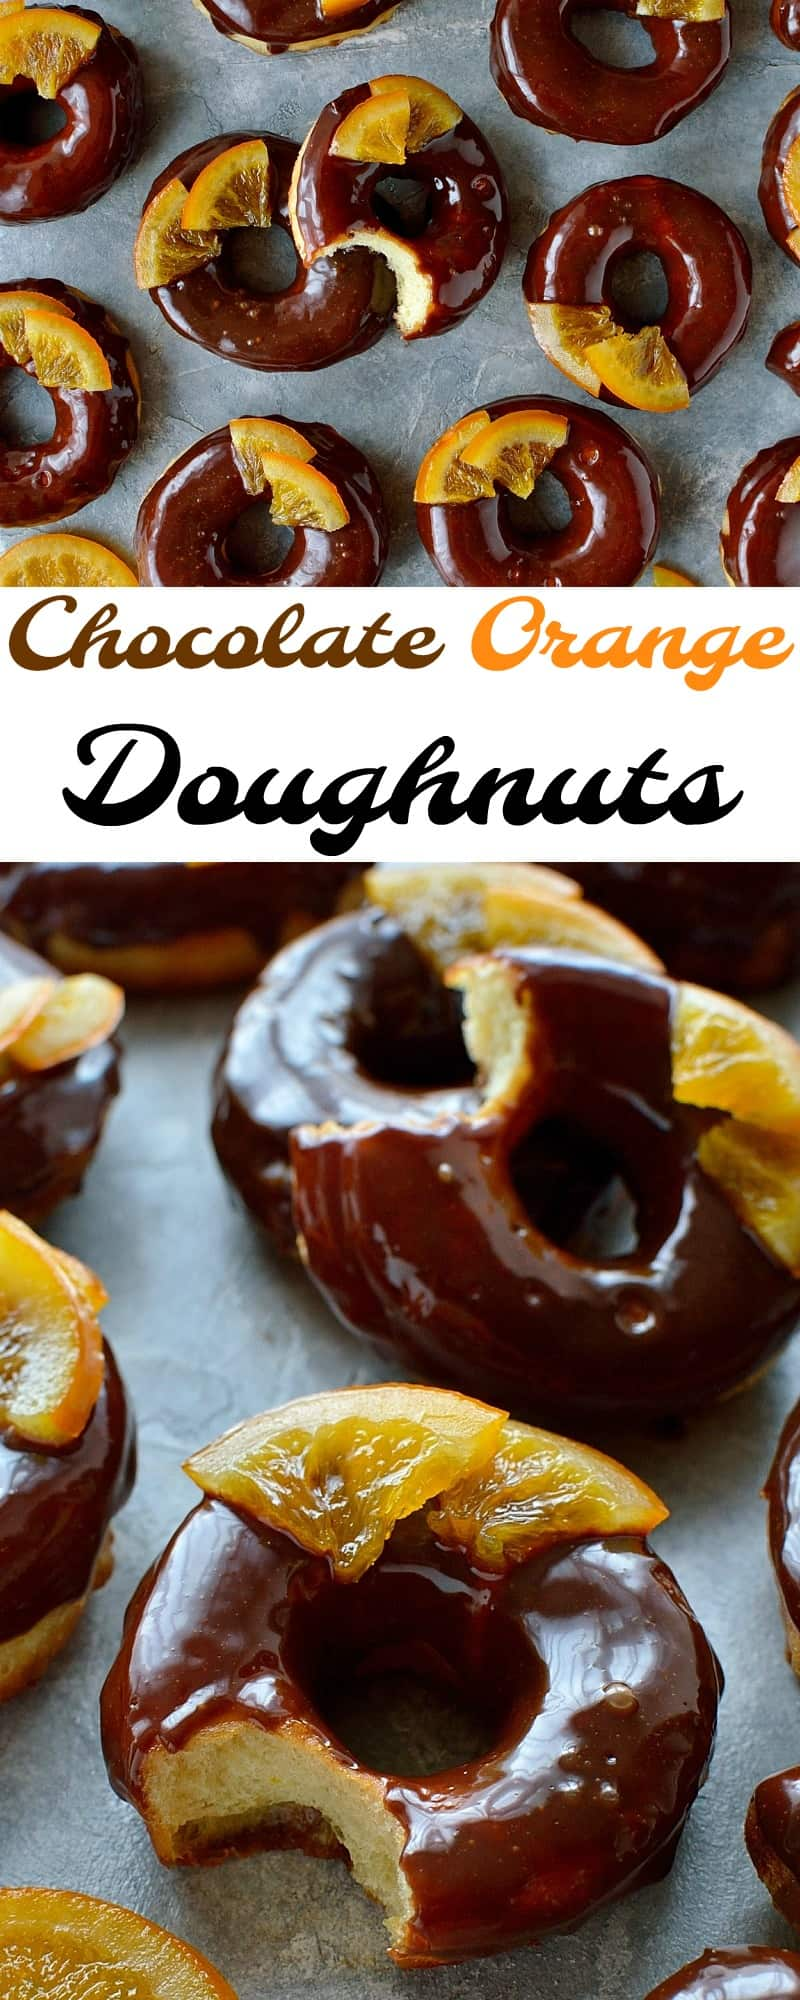 Chocolate orange doughnuts pinterest